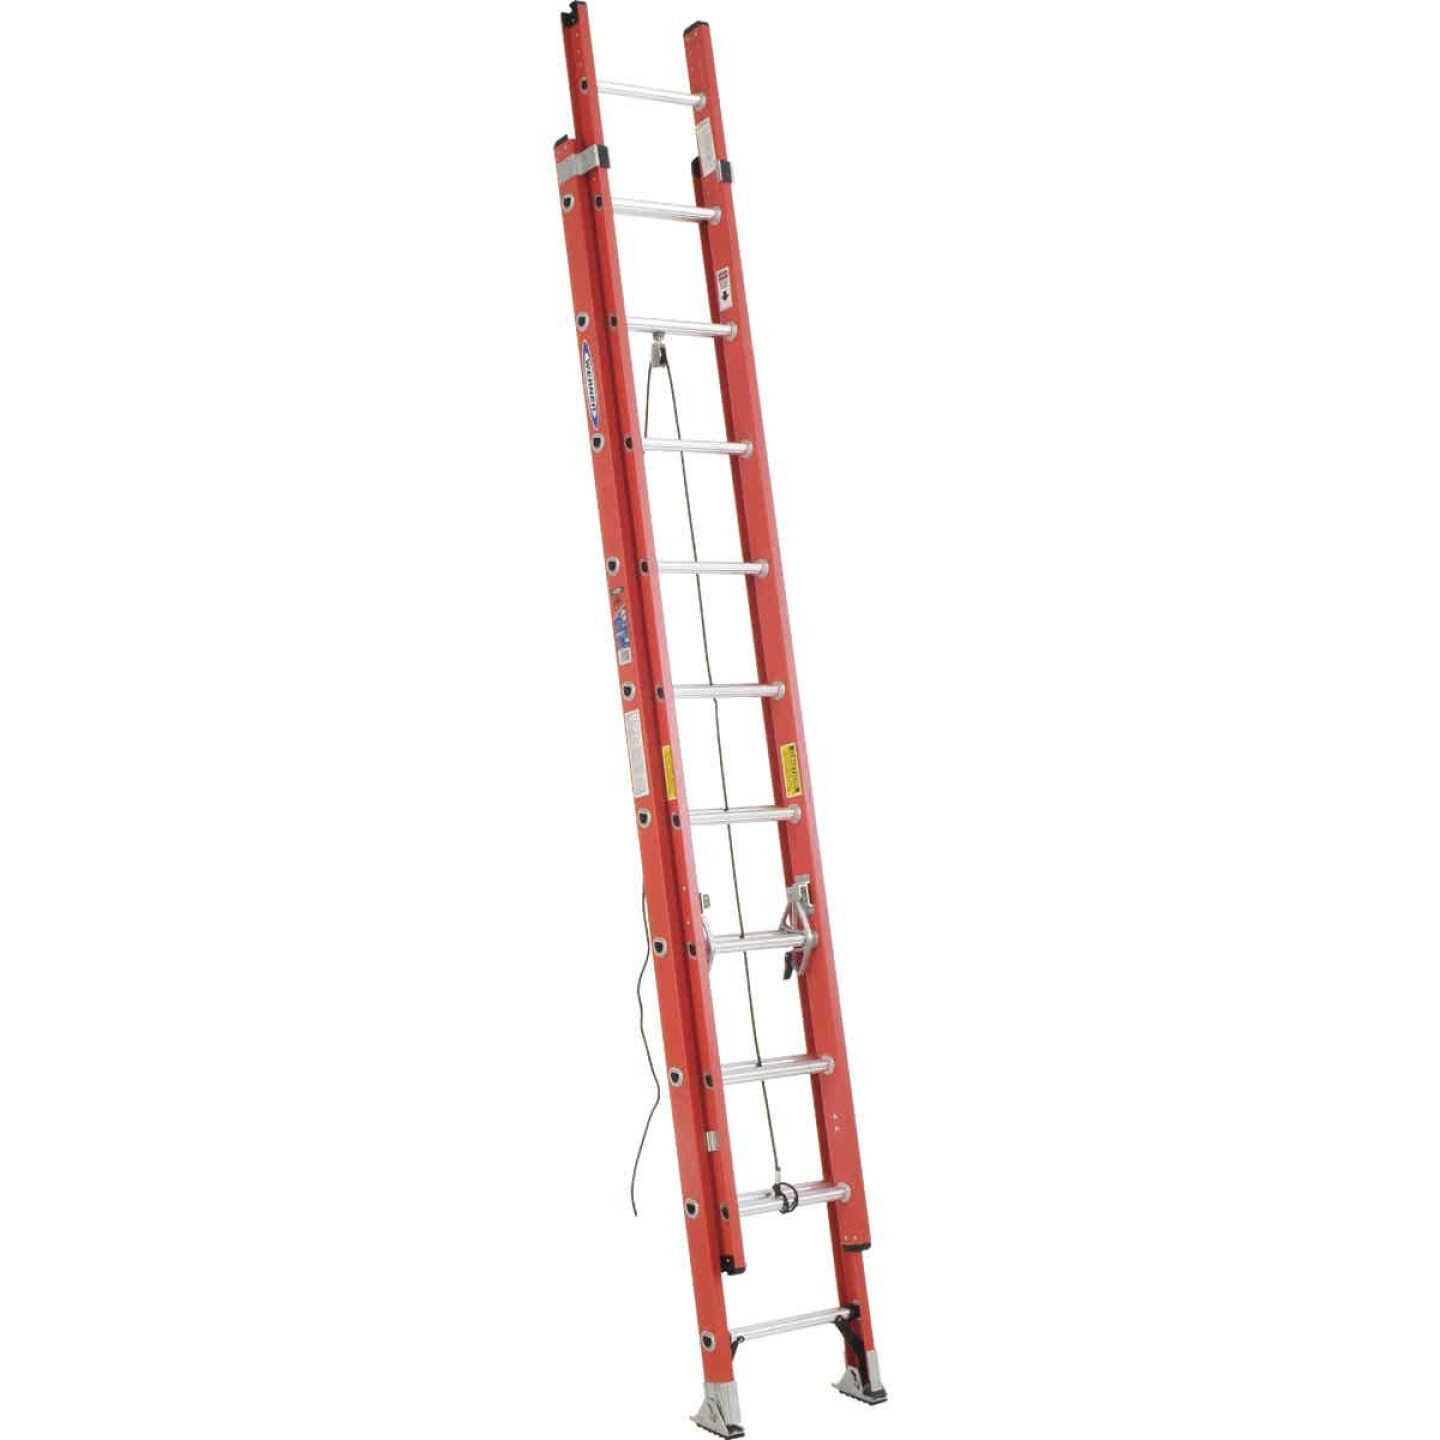 Werner 20 Ft. Fiberglass Extension Ladder with 300 Lb. Load Capacity Type IA Duty Rating Image 1